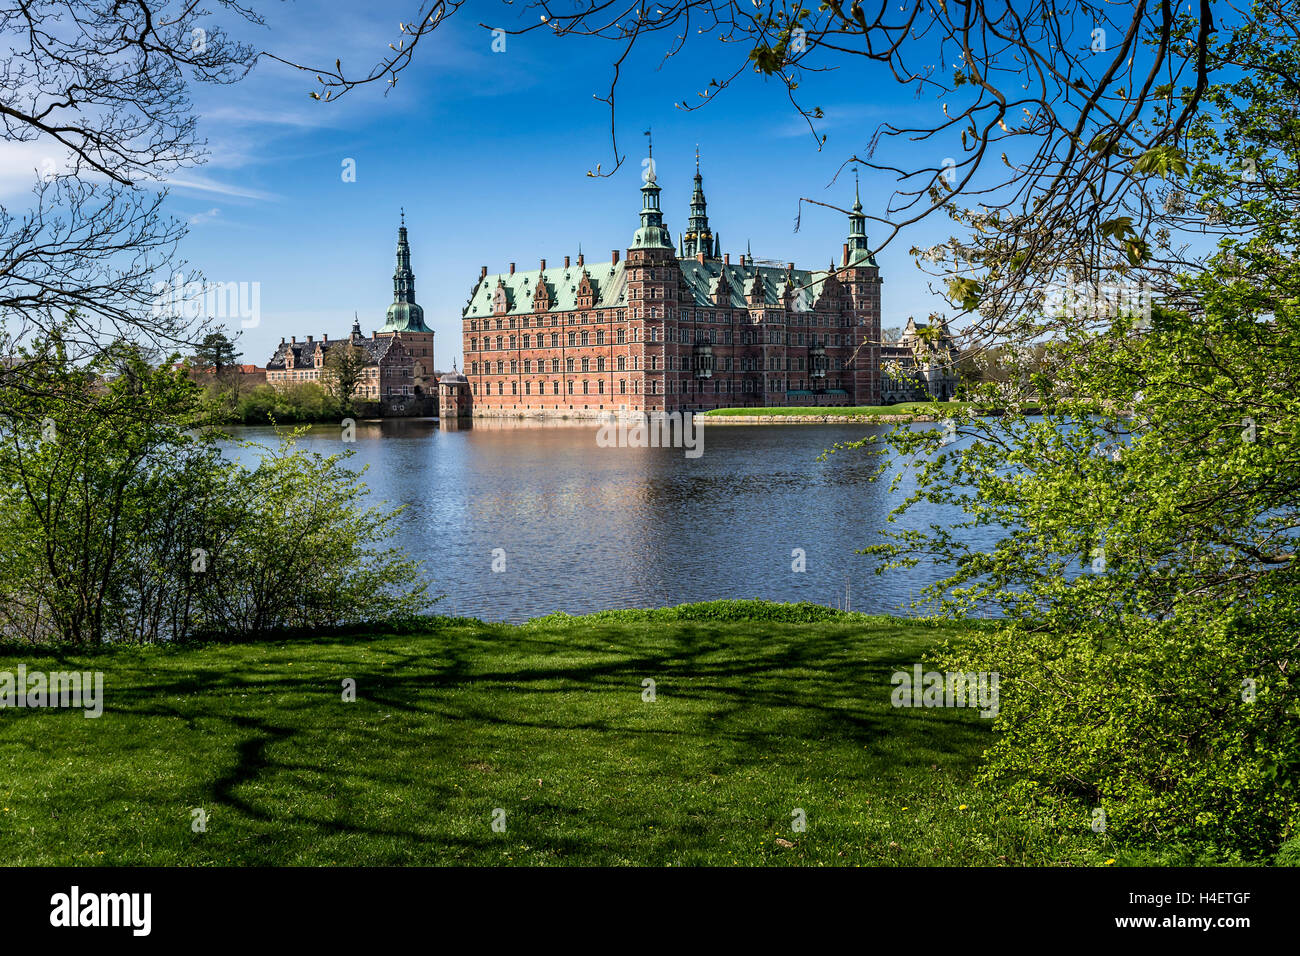 Morning sight of Frederiksborg Castle across the lake, settled in a town Hilerod, north-west of Copenhagen, Denmark - Stock Image